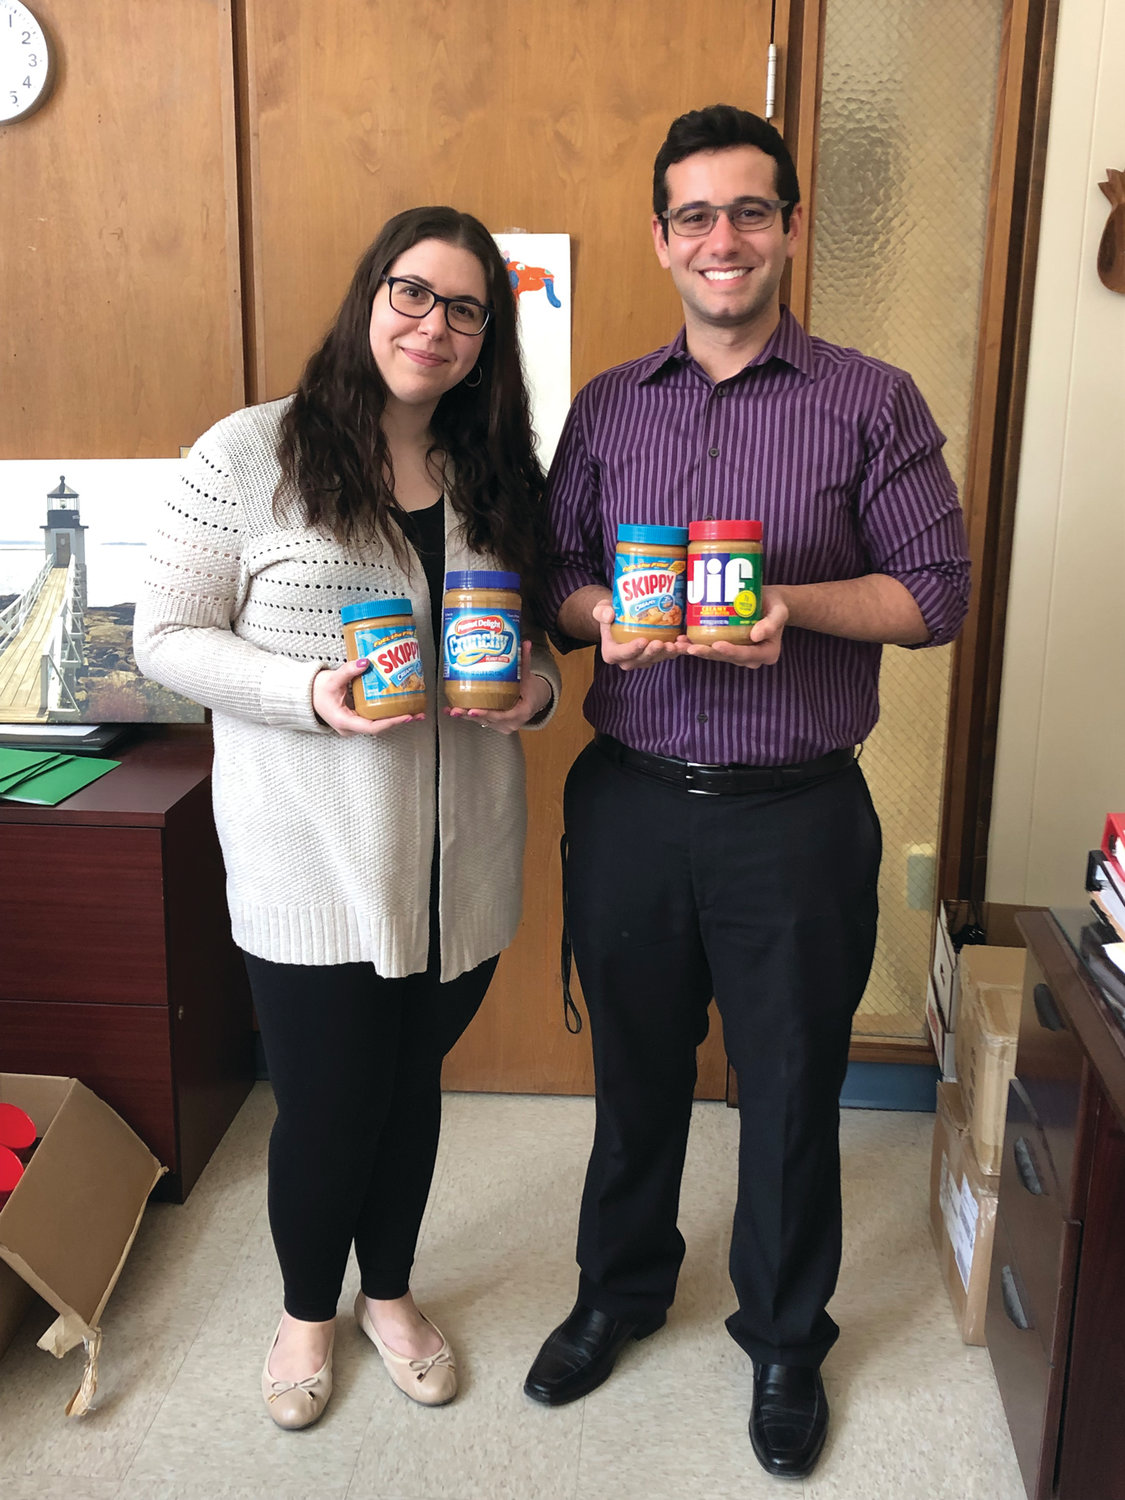 Class of 2020 advisers Nadia Cricco and Vinny Verardo have helped lead the charge in collecting jars and cash donations to help the school win again.